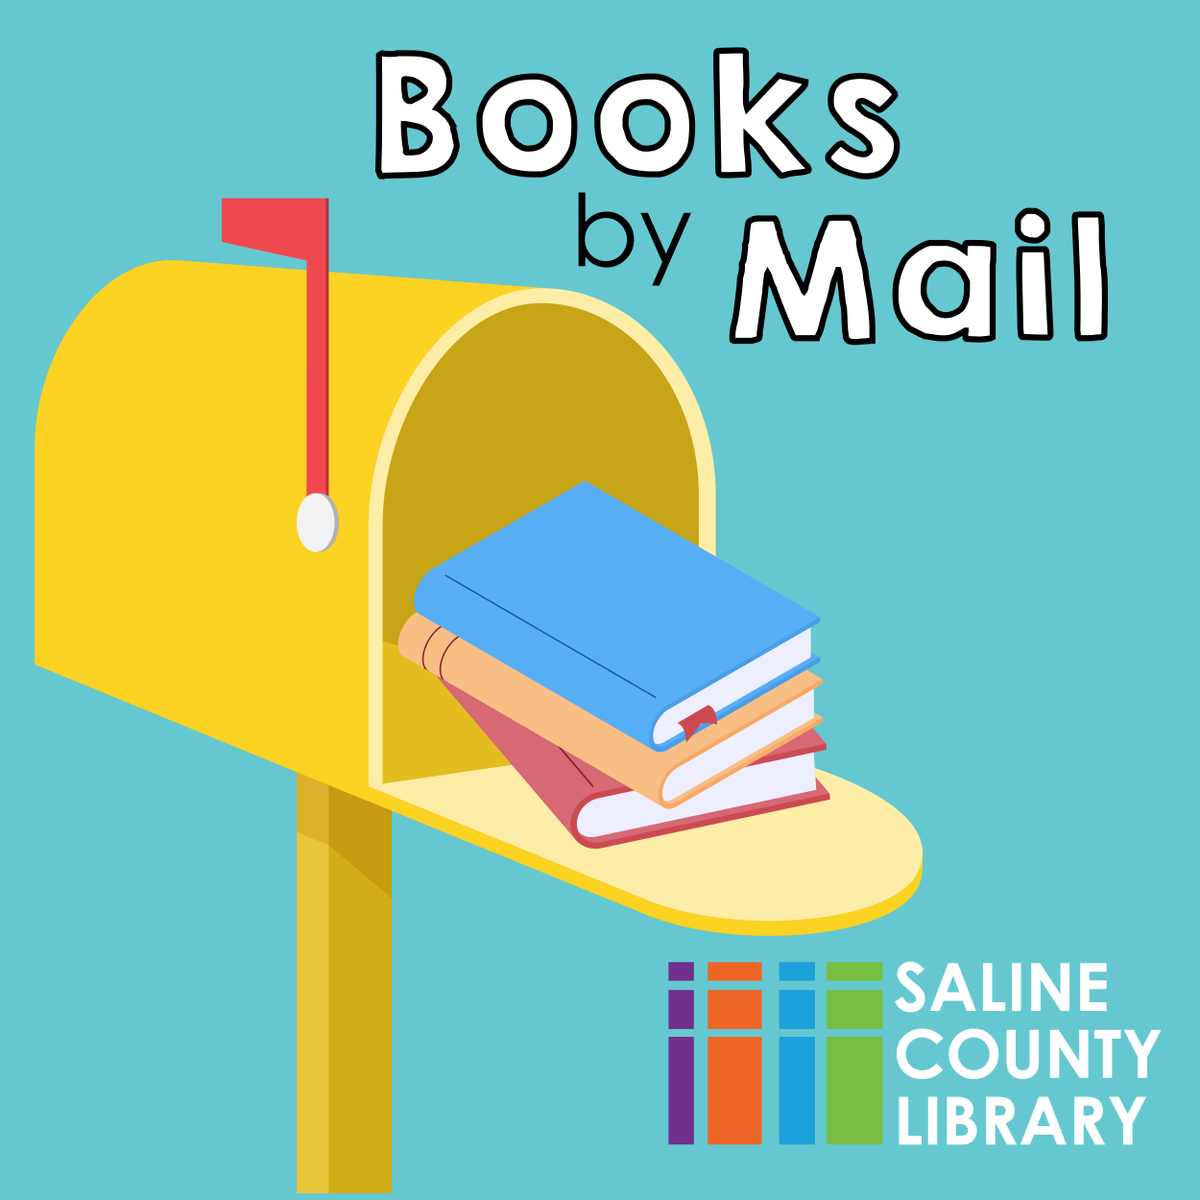 We are pleased to announce a new service! #BooksbyMail is in the testing phase and we are seeking candidates who live in outlying areas. If you are interested, please fill out this application form. Space is limited to the first 30 qualifying participants.